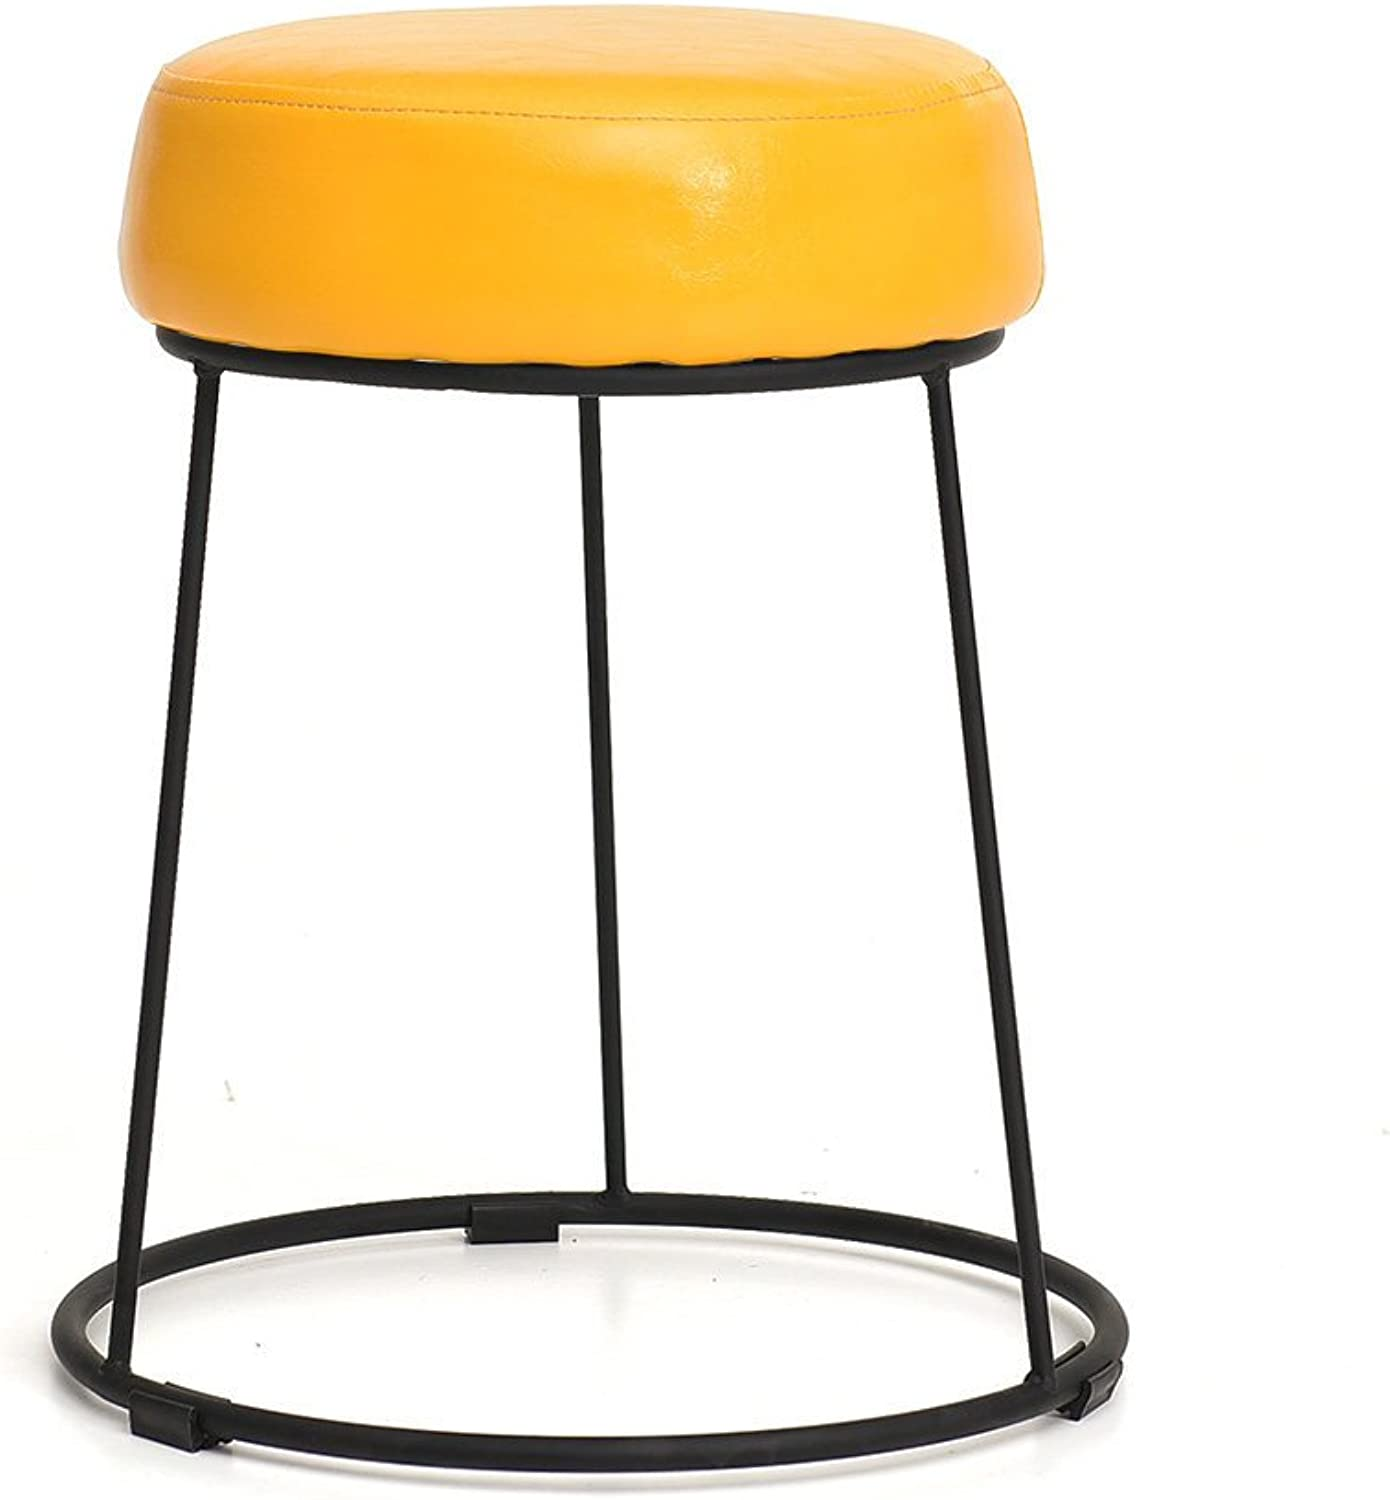 Wrought Iron Creative Stool,Linen Leather Modern Simple Nordic Style Minimalist Multifunctional Living Room Home Bedroom Dining Room Multicolor Stool-N